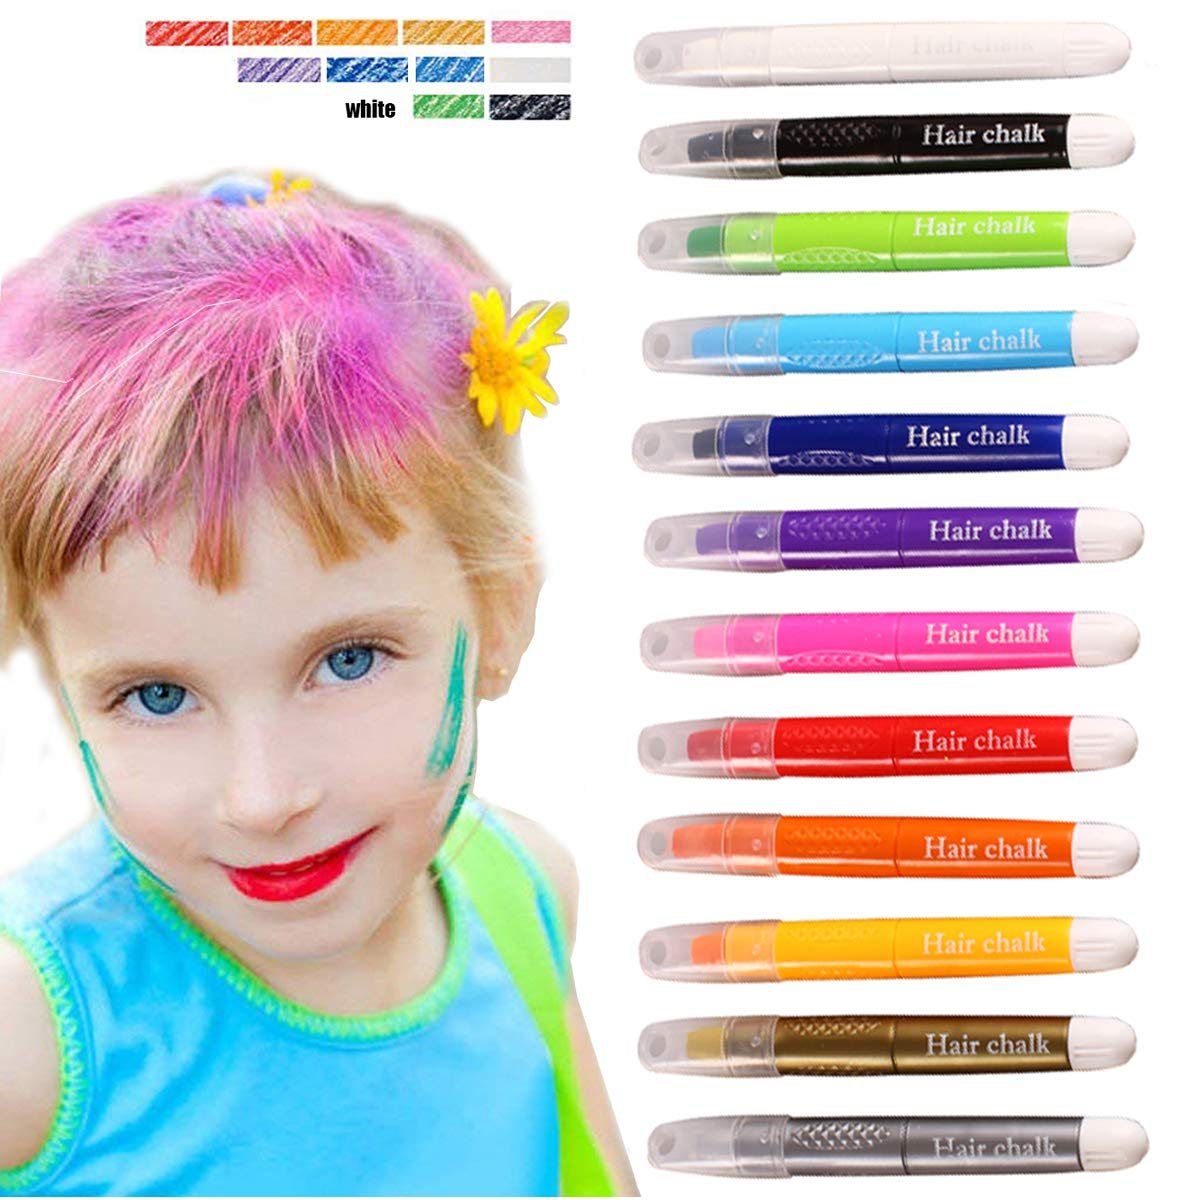 Kyerivs Hair Chalk Pens 12 Colors Temporary Hair Chalk,Easy To Use,Works On All color hair -Great Dress Up Performance Costumes Halloween Christmas Party Temporary Color For Kids Of All Ages